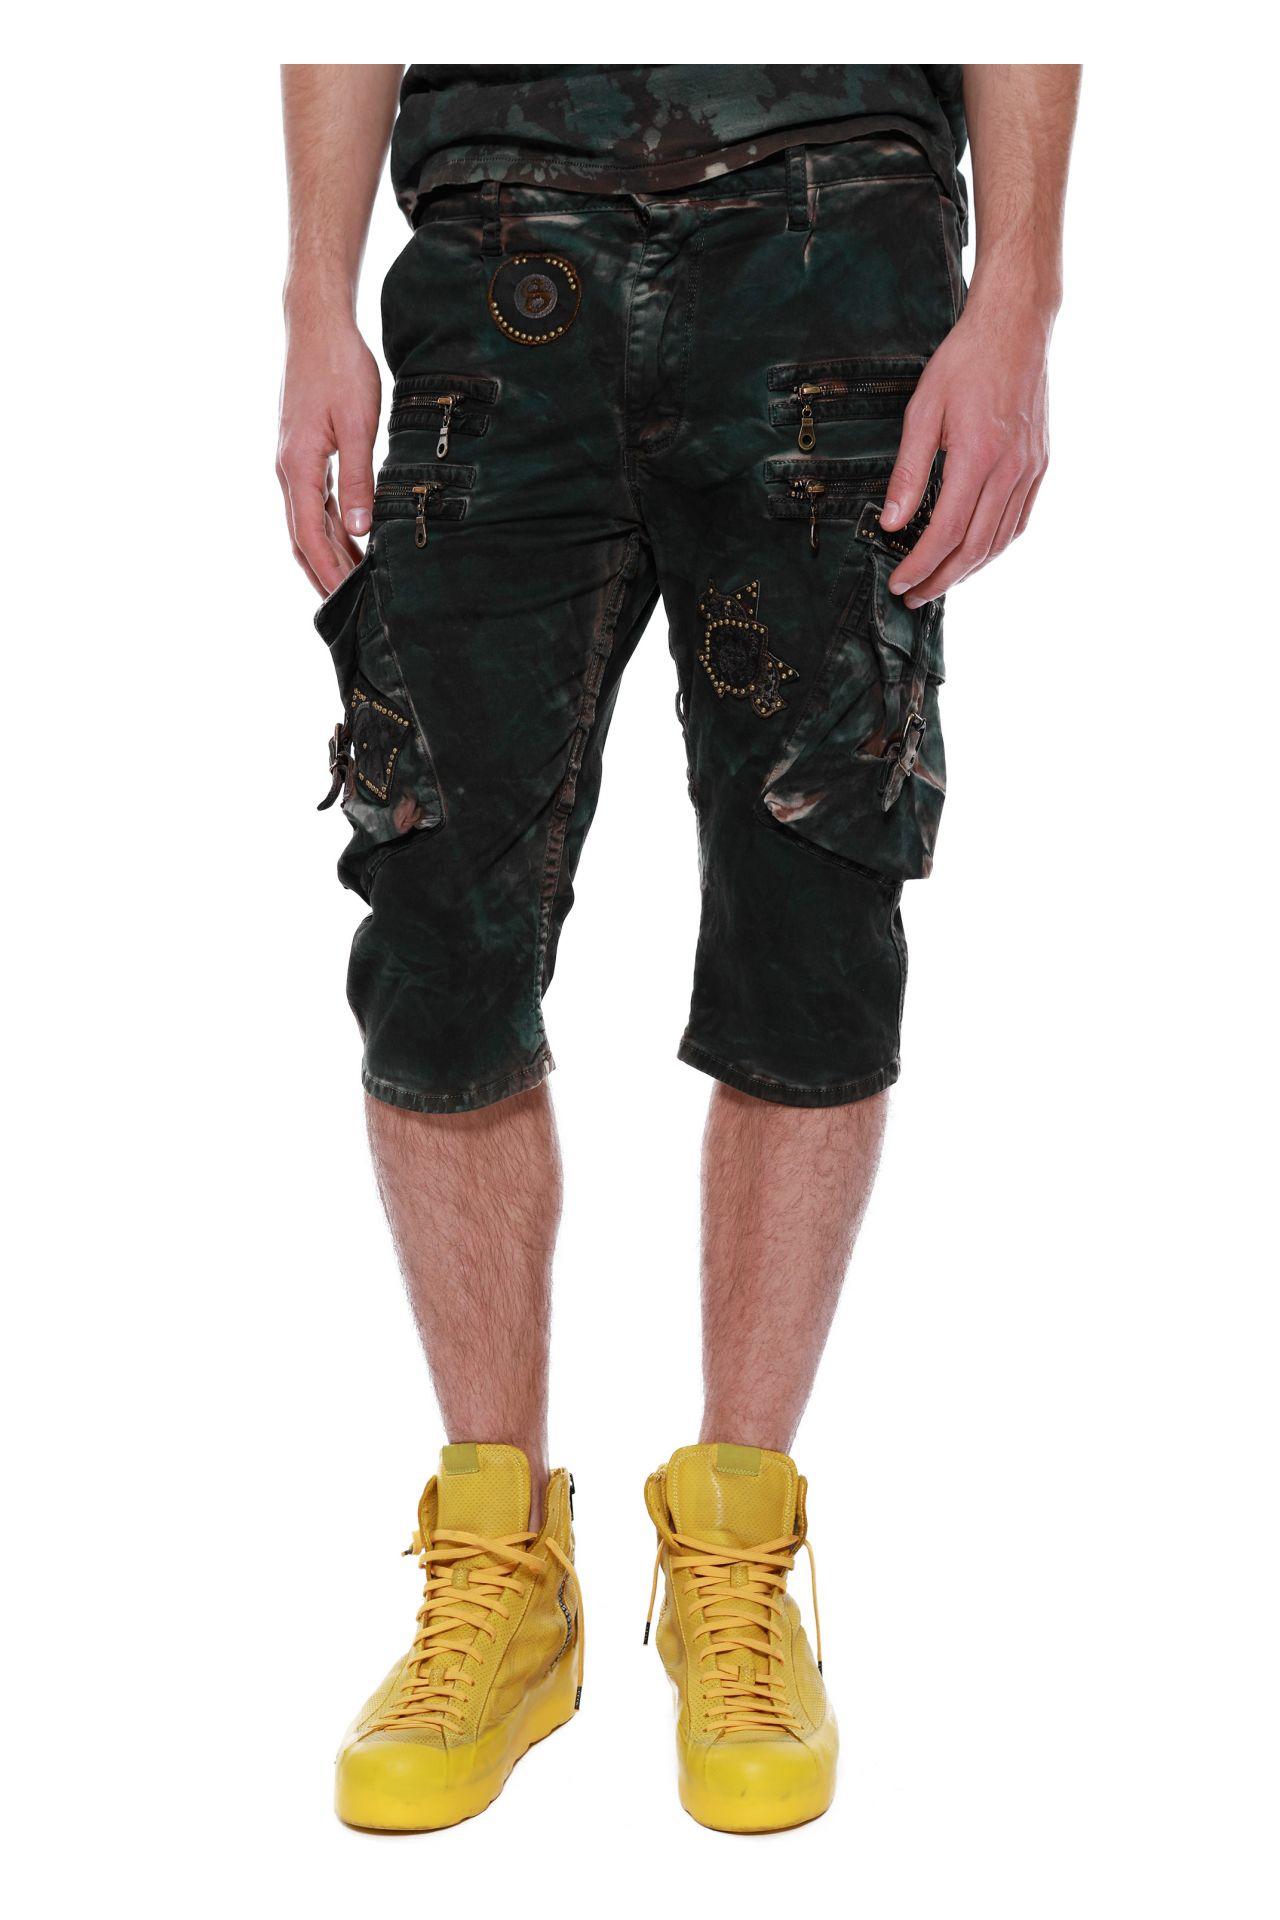 RAPTOR SHORTS IN MILITARY GREEN CAMO WITH PATCHES & STUDS